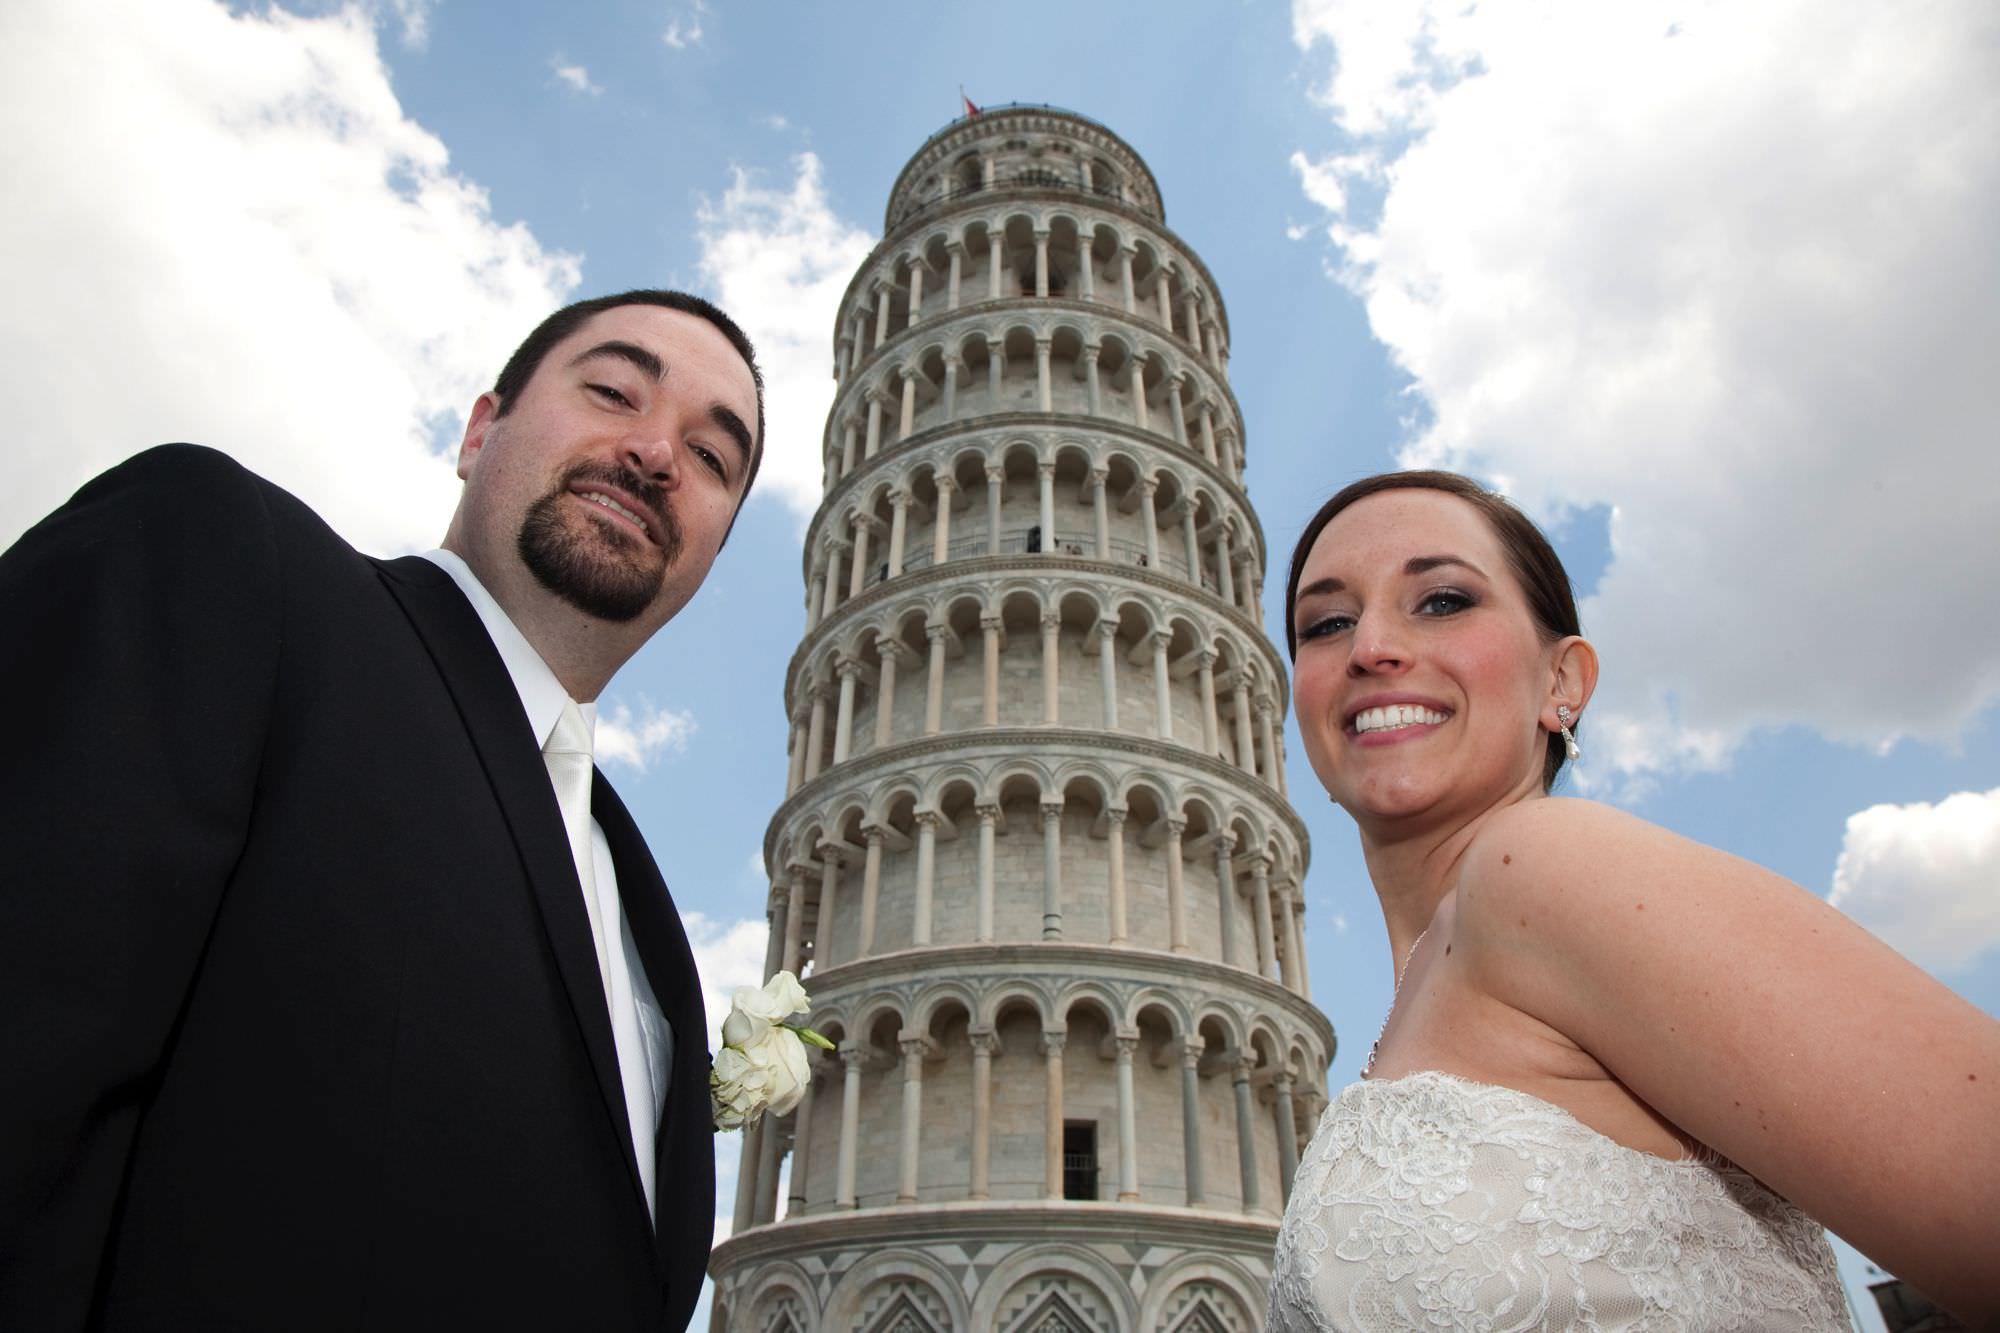 Pisa Weddings